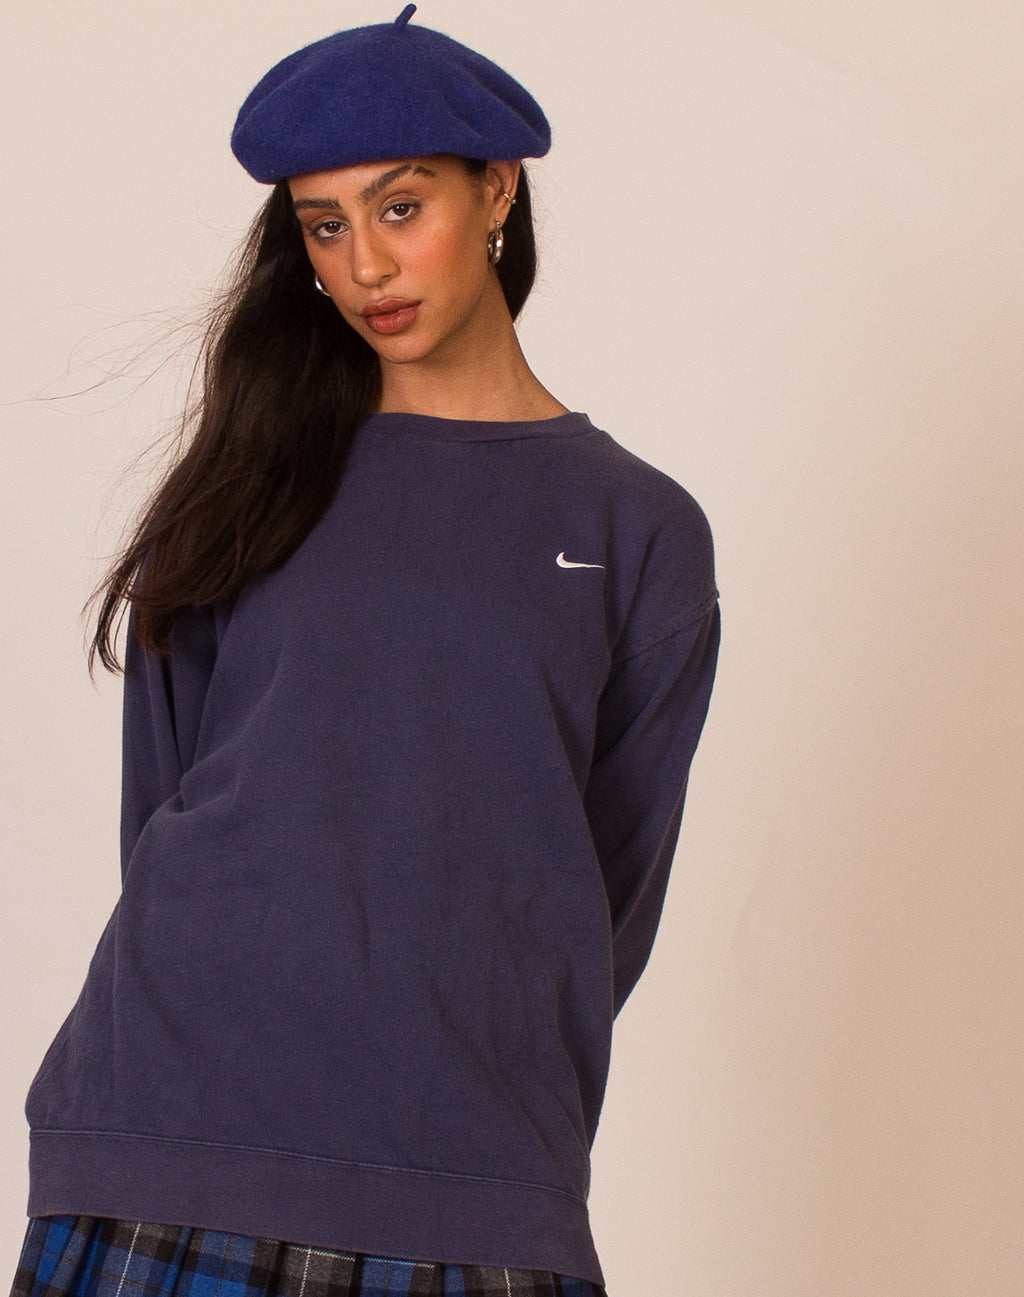 NIKE NAVY TICK SWEATSHIRT